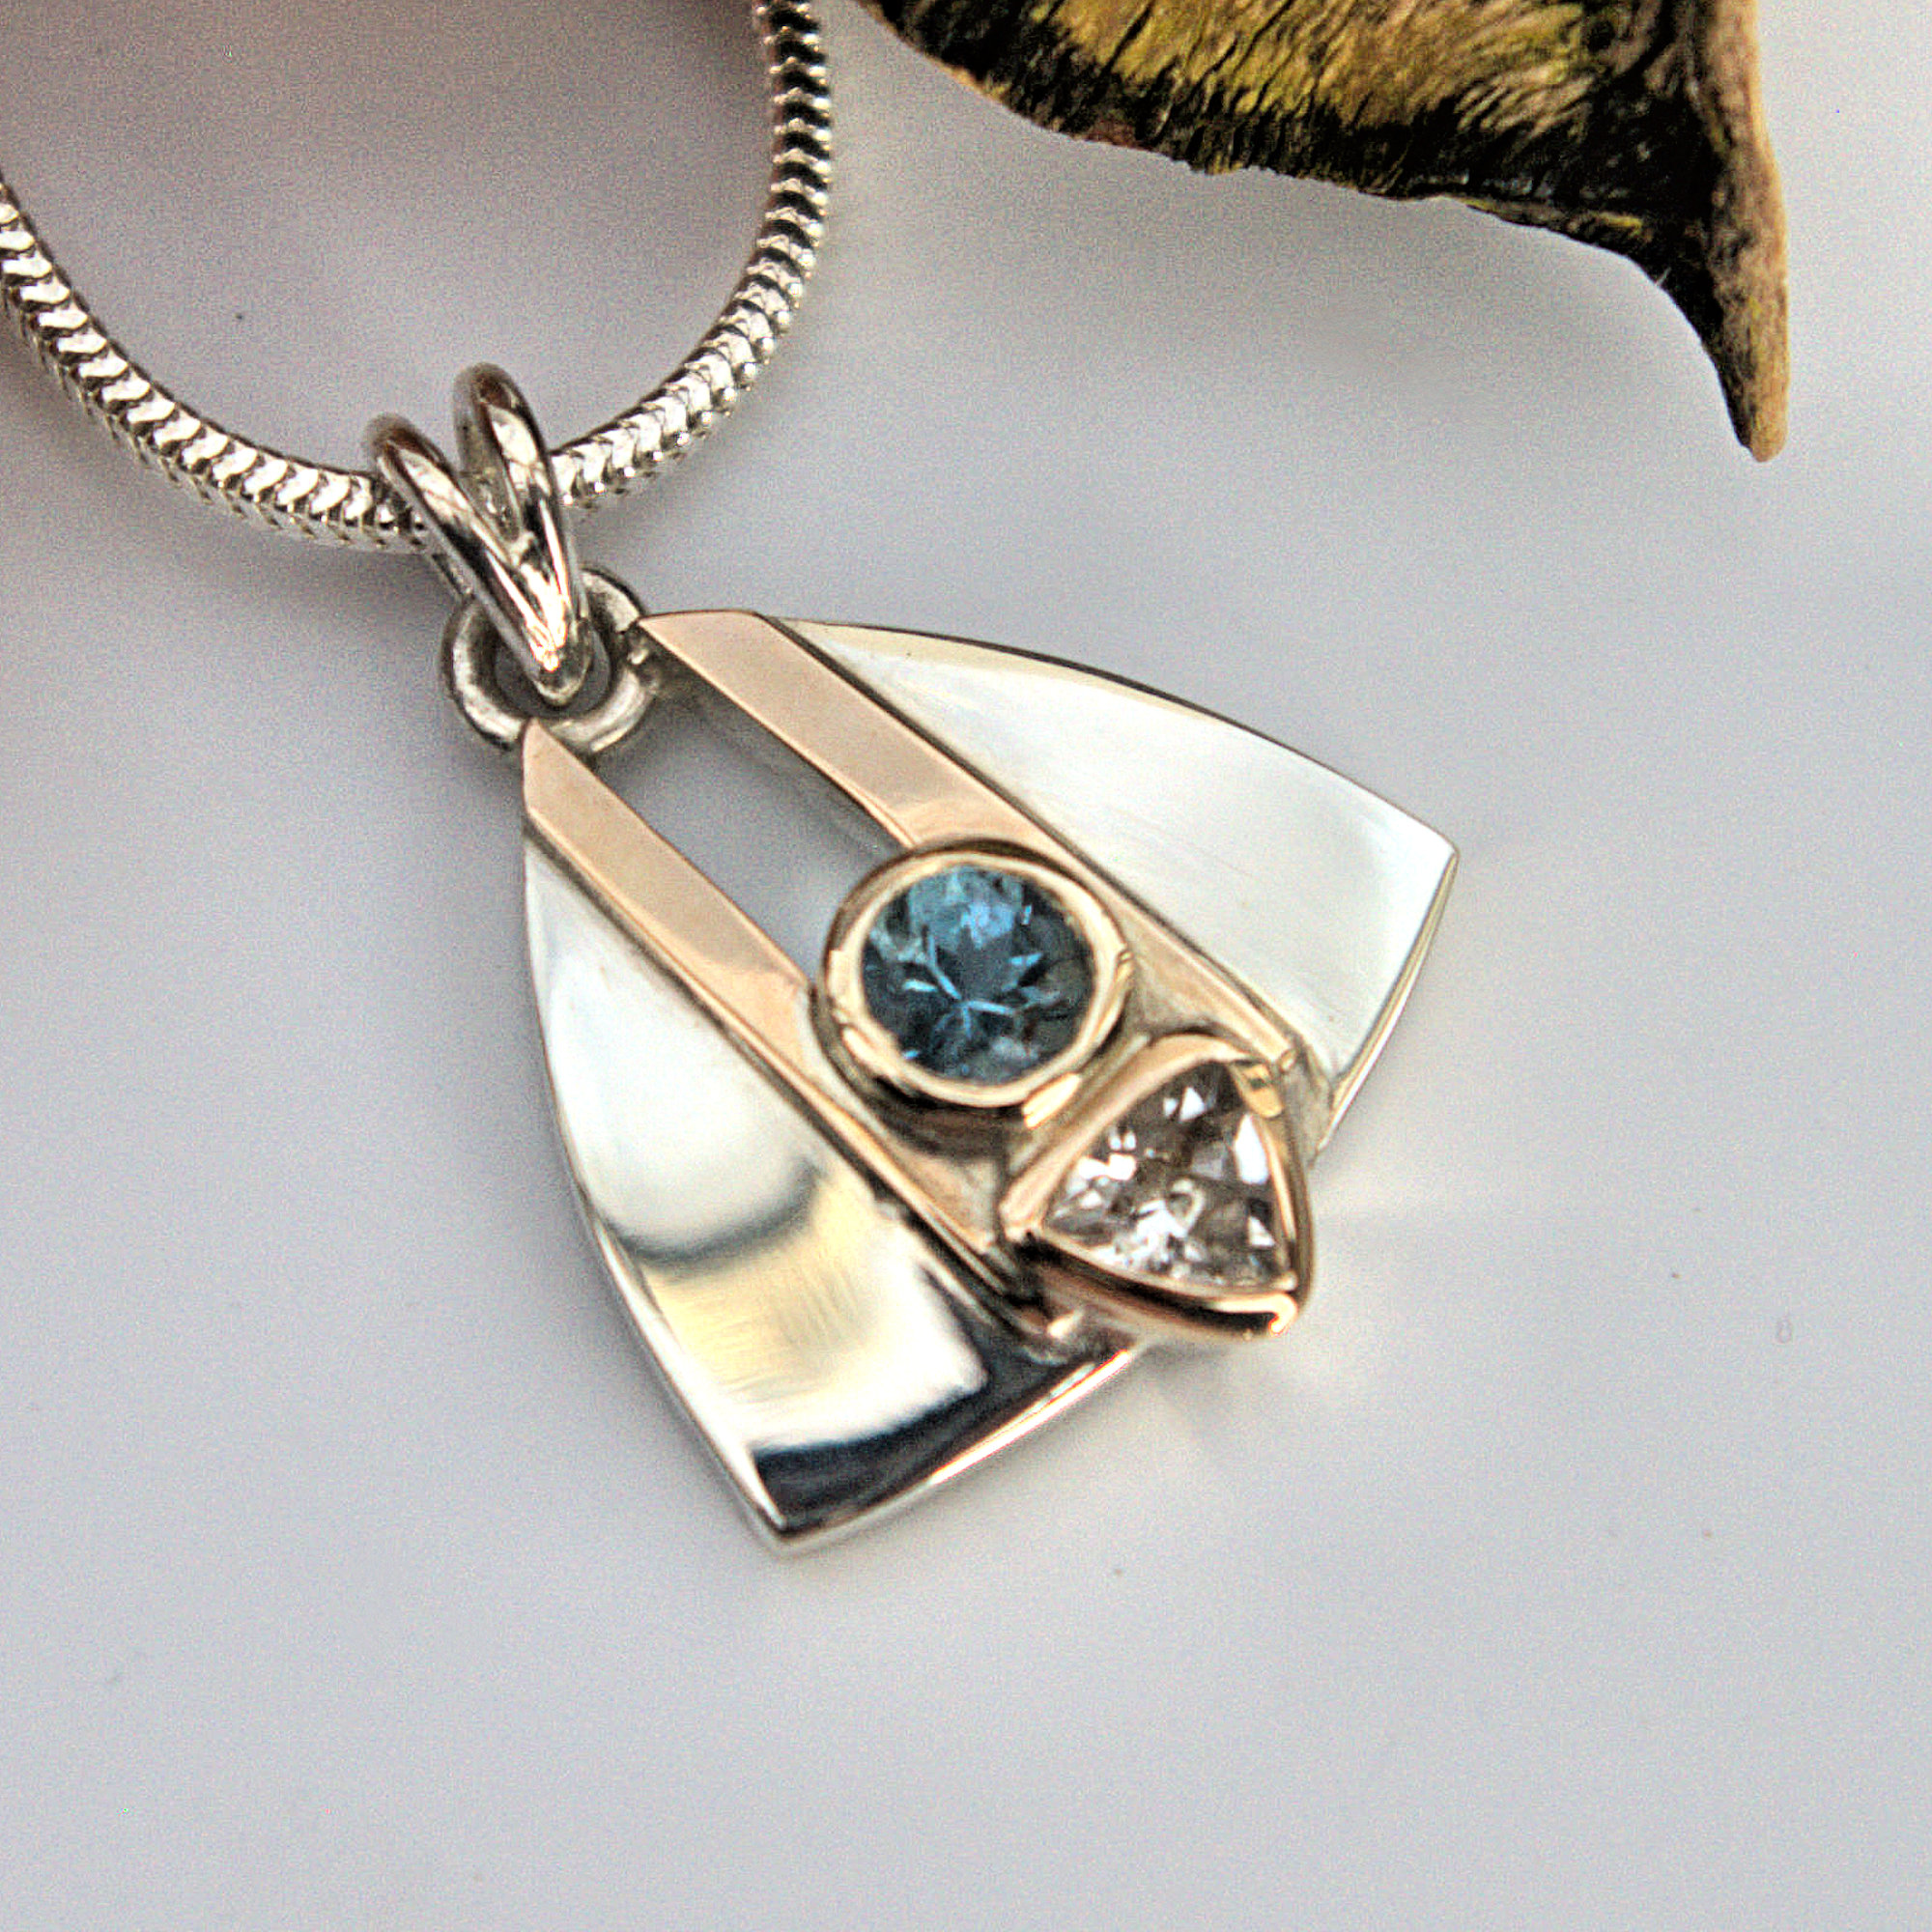 Aquamarine and Topaz pendant